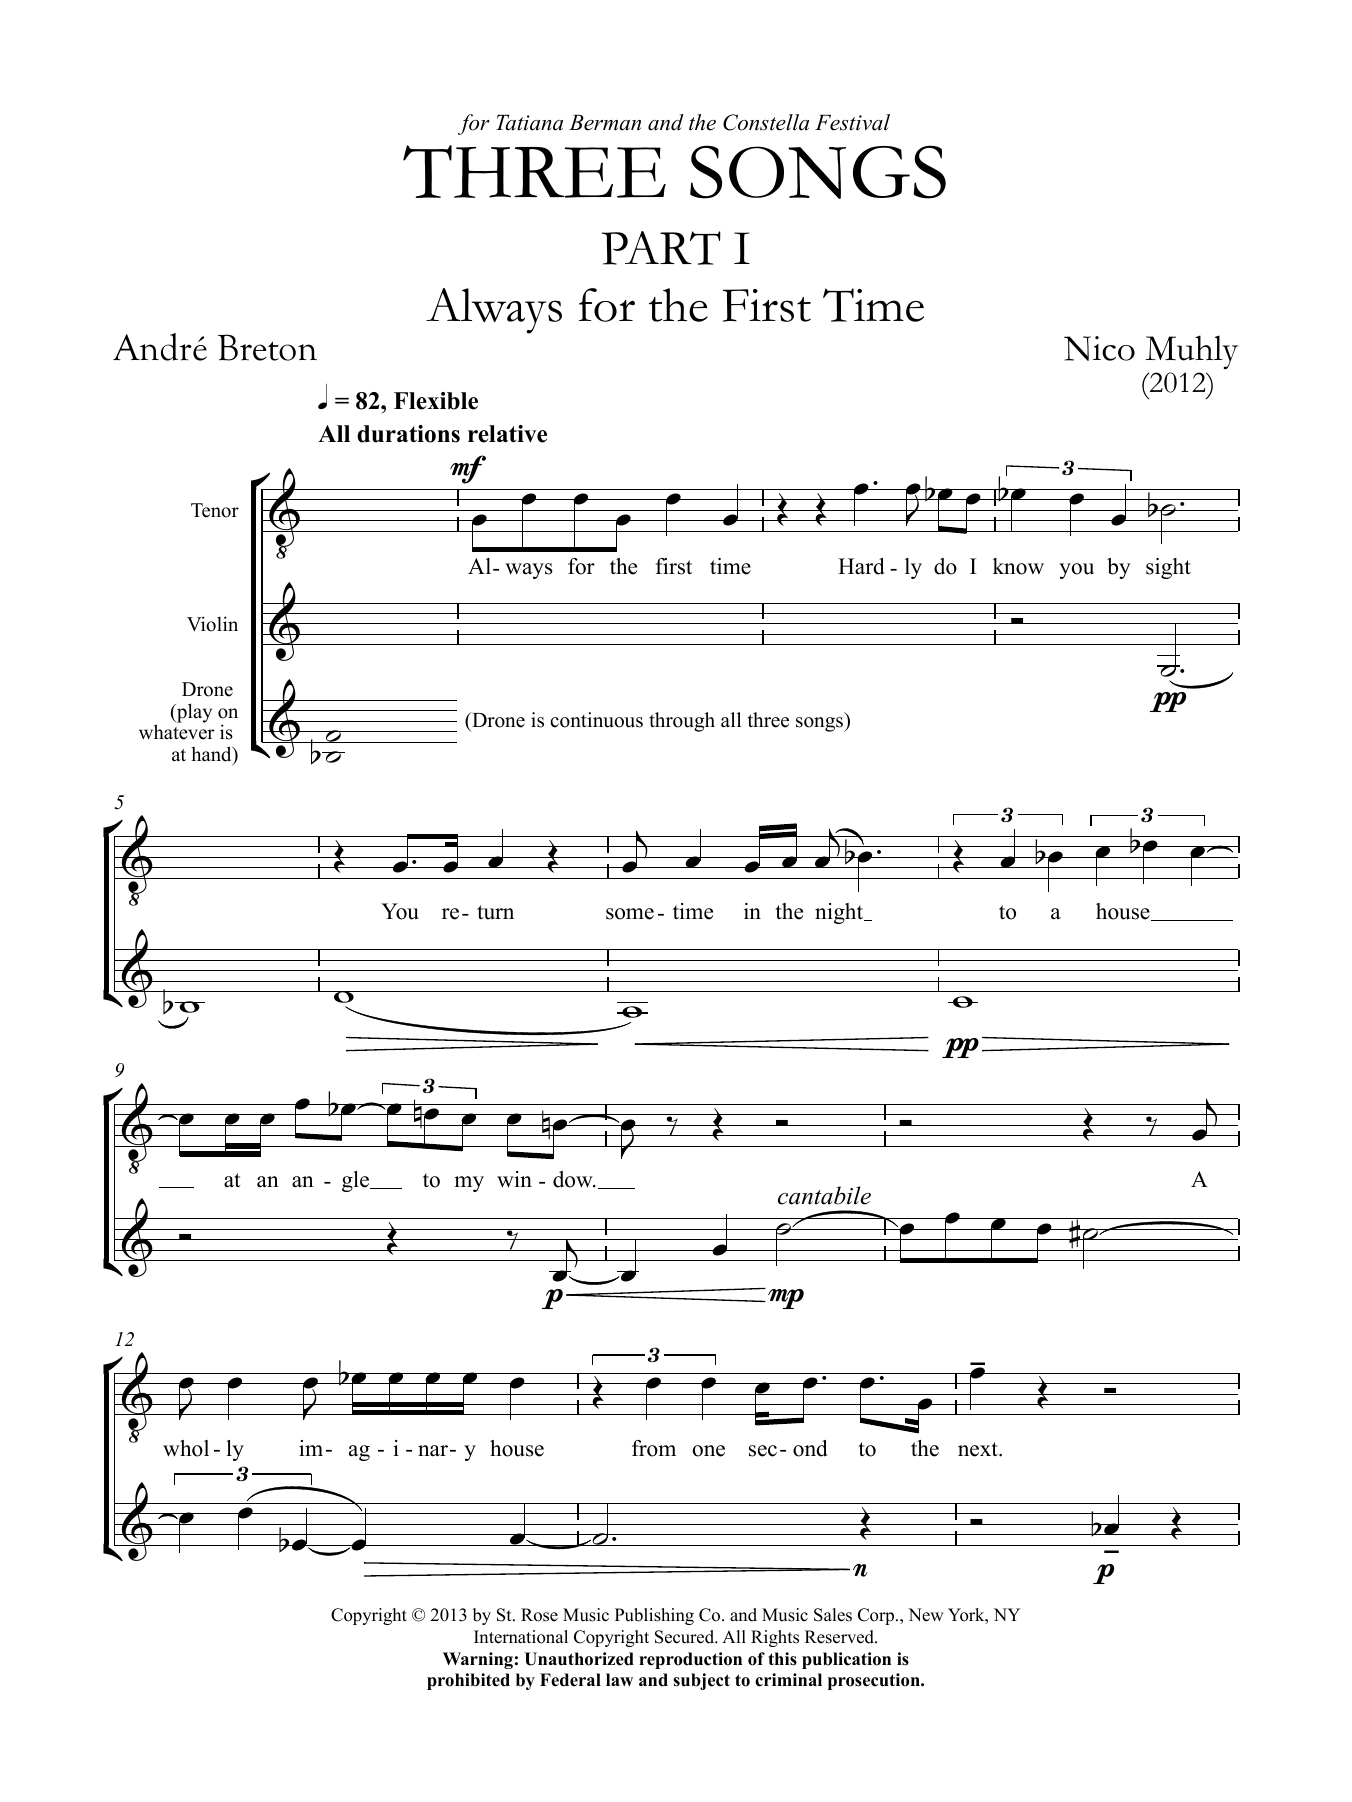 Three Songs for Tenor, Violin and Drone Sheet Music